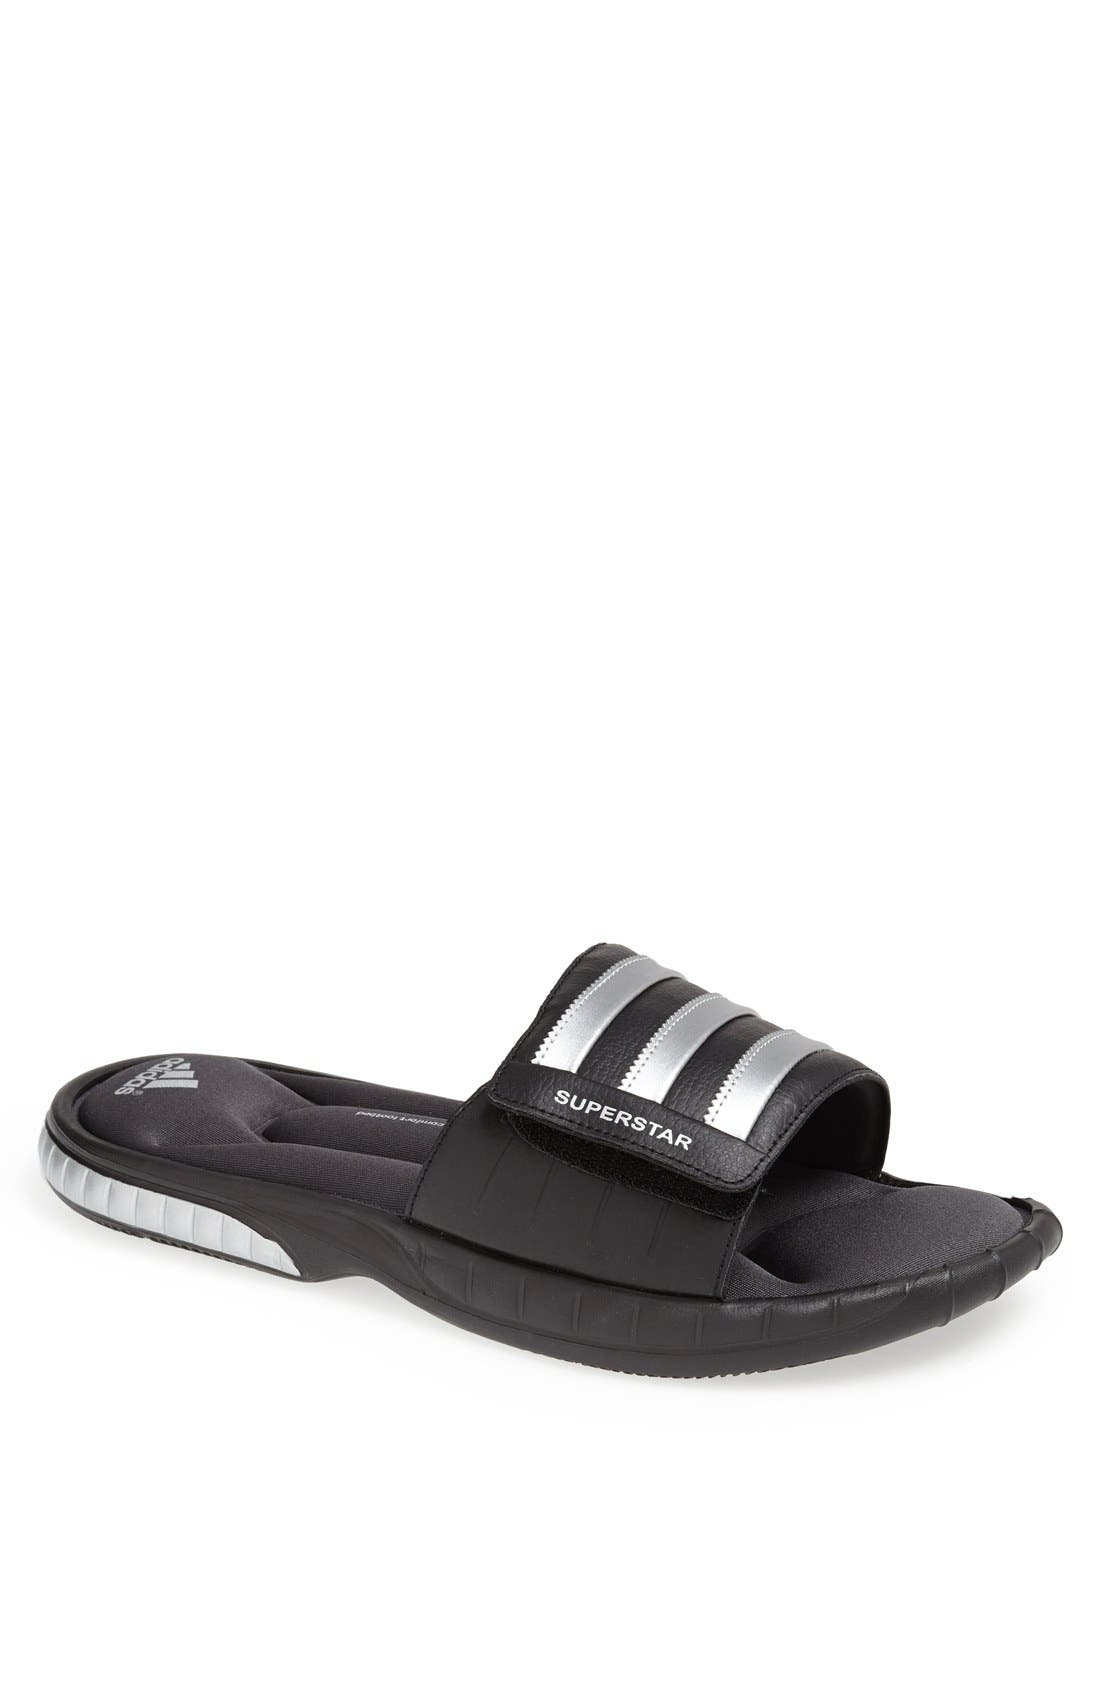 Superstar 3G Slide Sandal,                         Main,                         color, 001